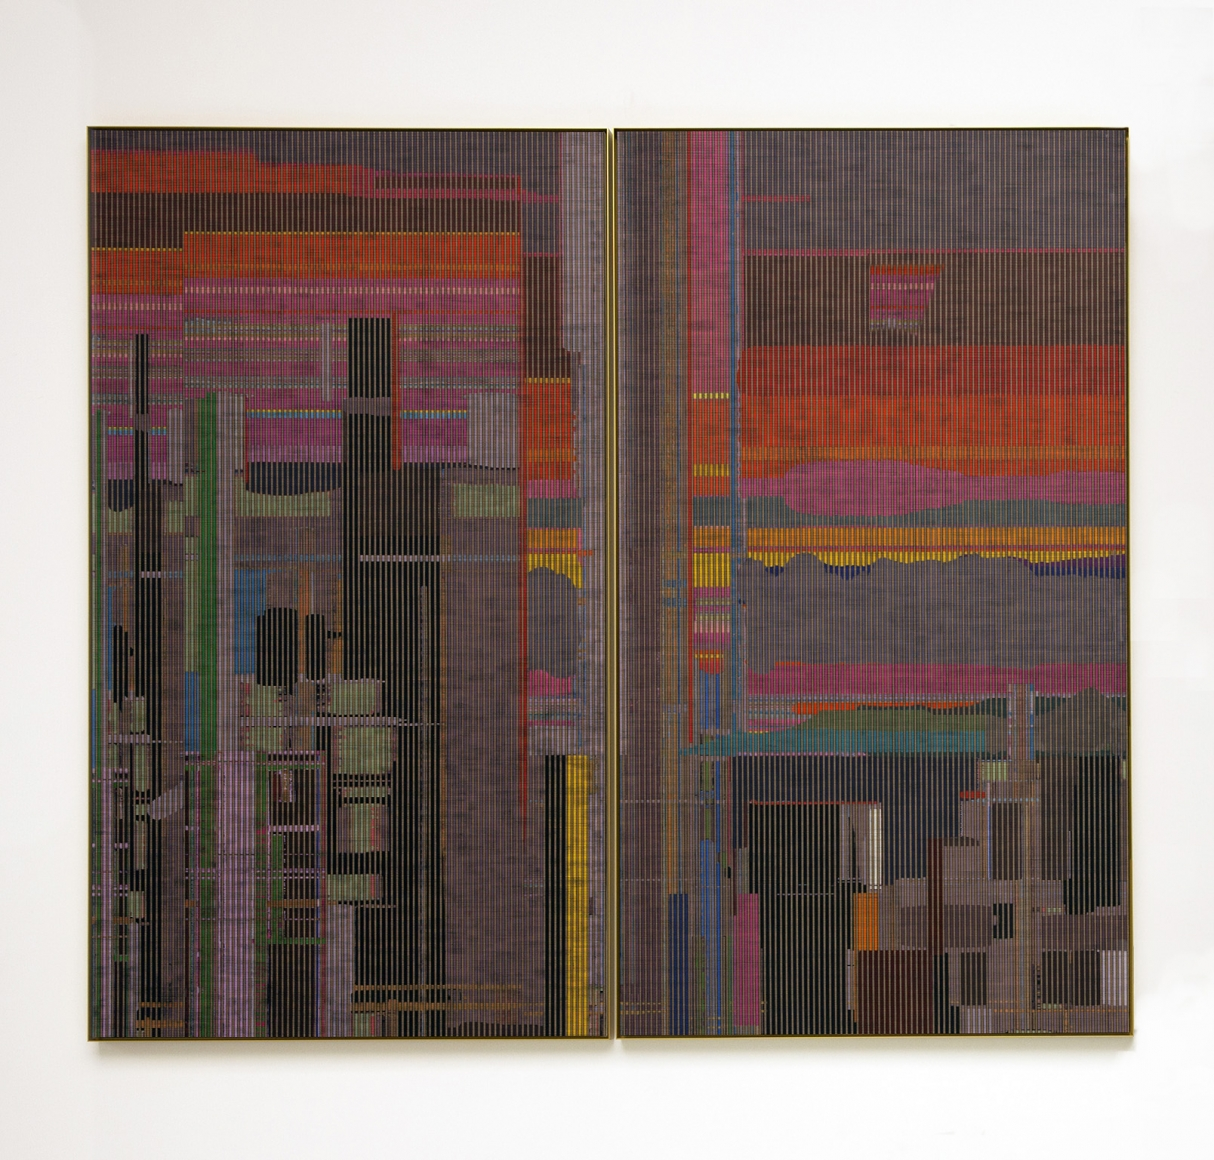 LIU WEI, Panorama No. 2, 2015–2016